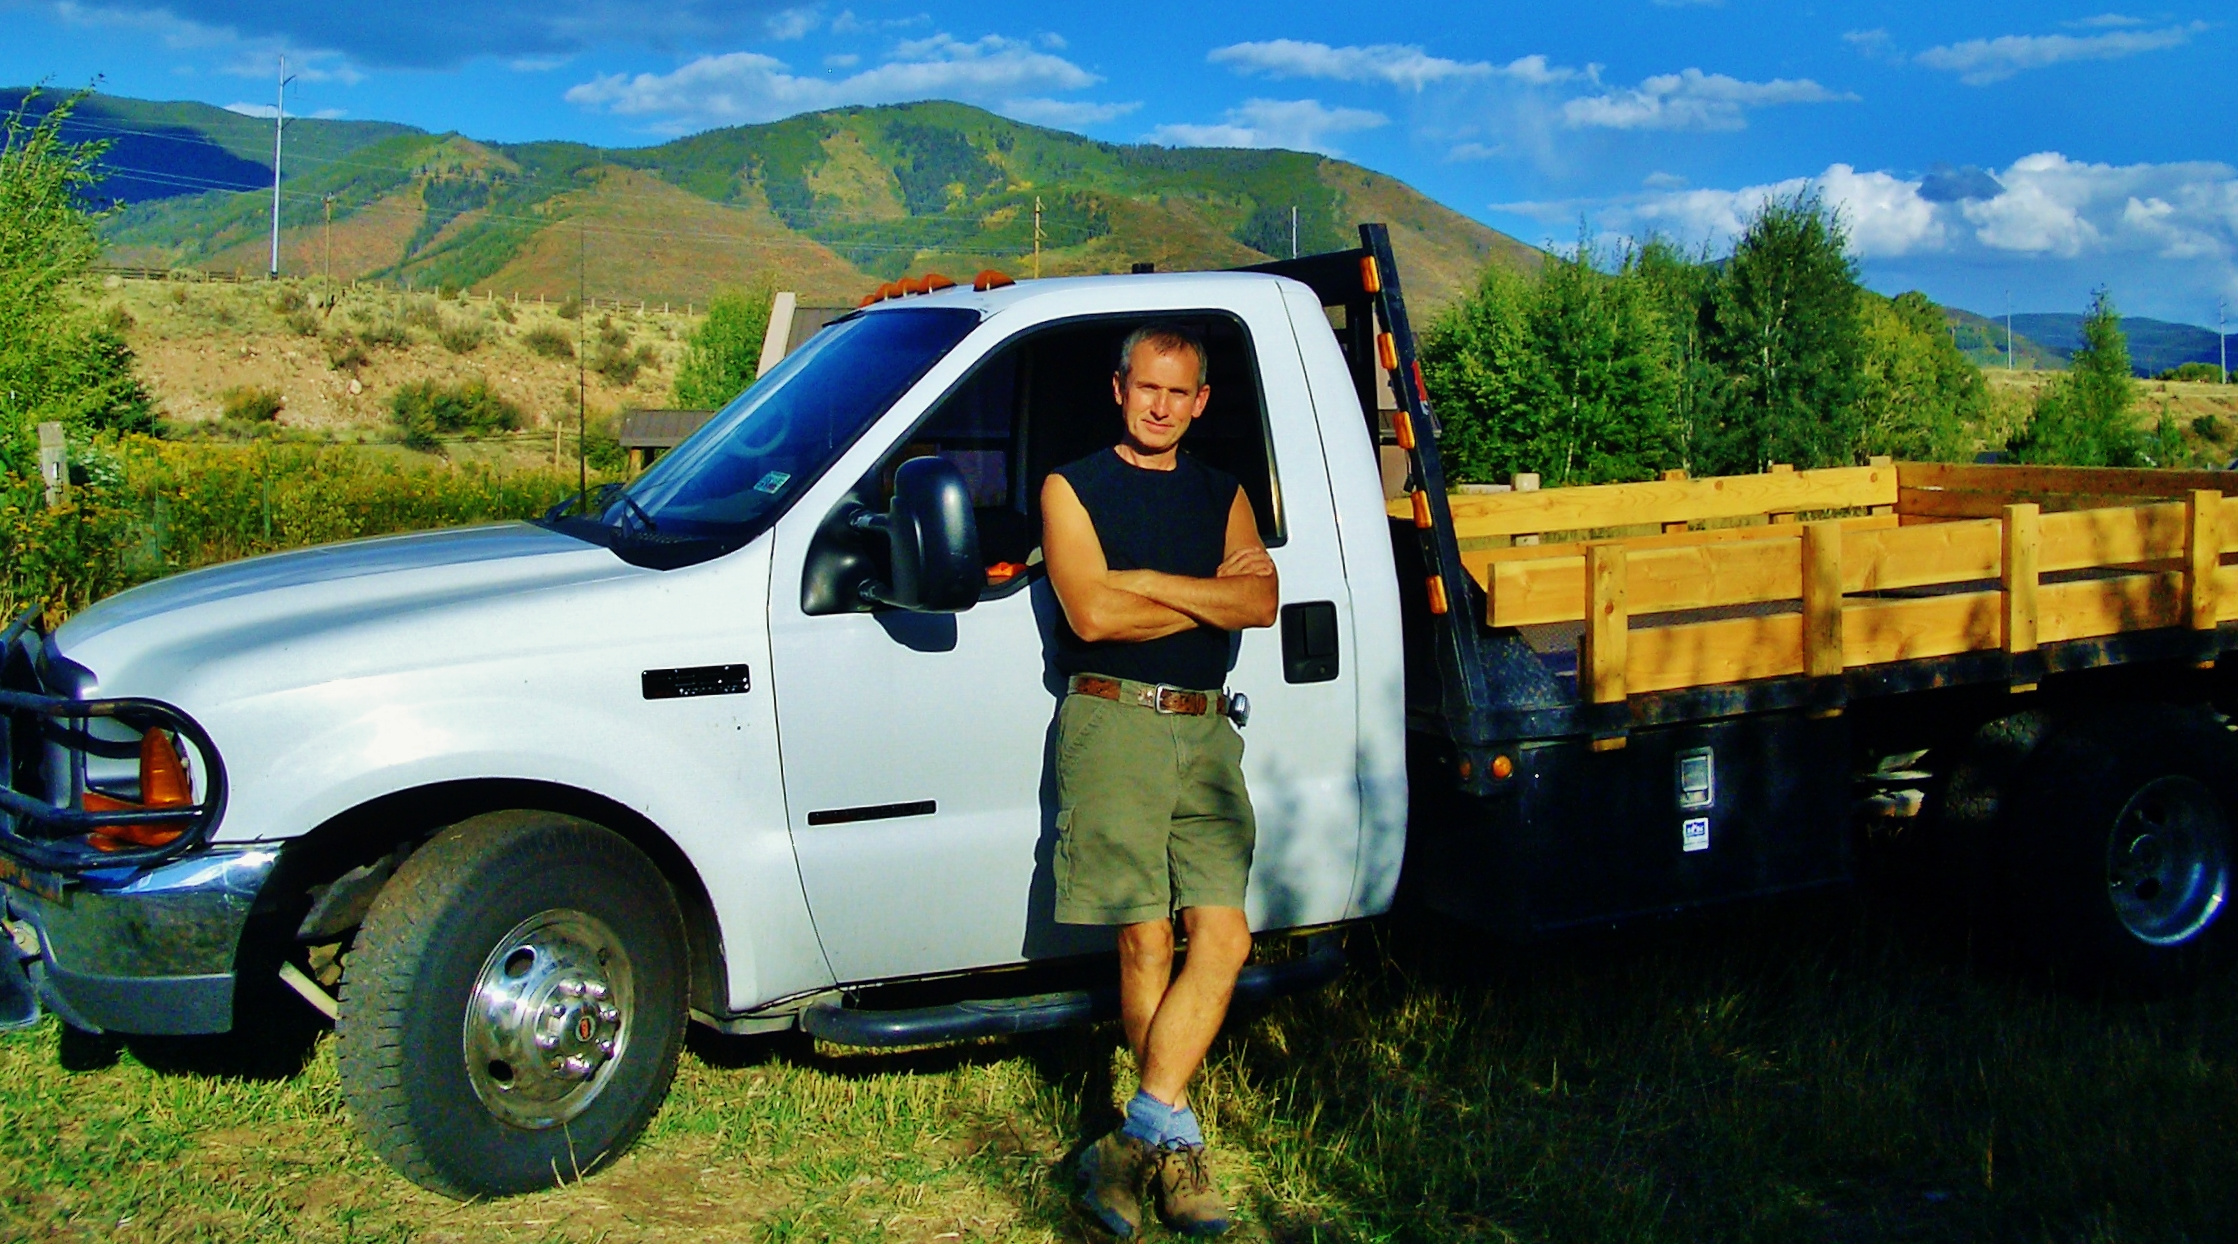 Martin Cooney August 1st 2004 with Ford F350 Flatbed Truck